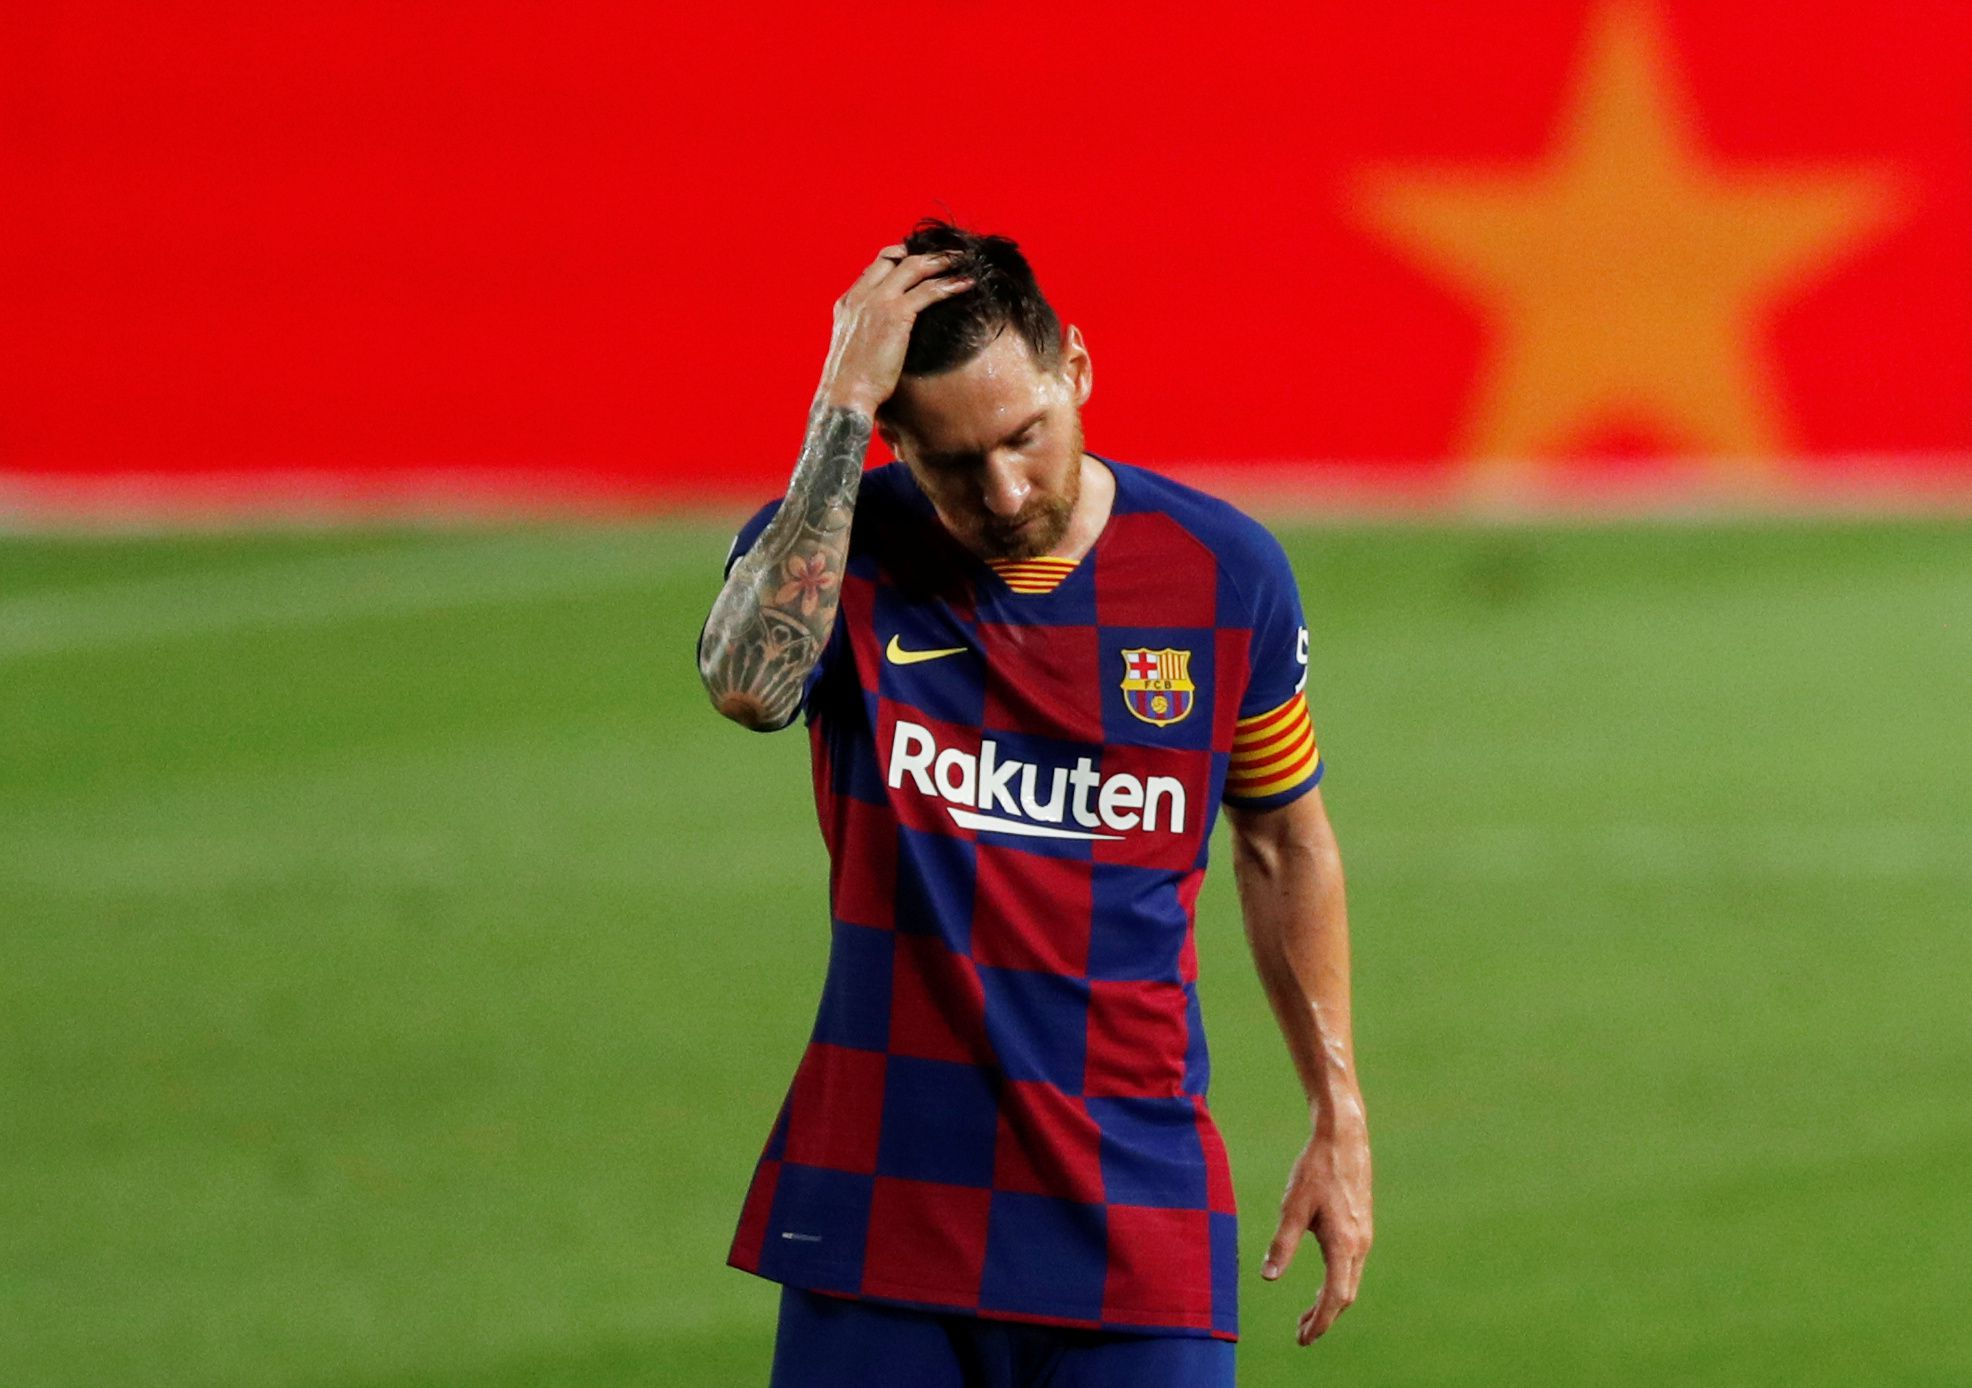 Soccer Football - La Liga Santander - FC Barcelona v Osasuna - Camp Nou, Barcelona, Spain - July 16, 2020   Barcelona's Lionel Messi looks dejected after the match, as play resumes behind closed doors following the outbreak of the coronavirus disease (COVID-19)   REUTERS/Albert Gea